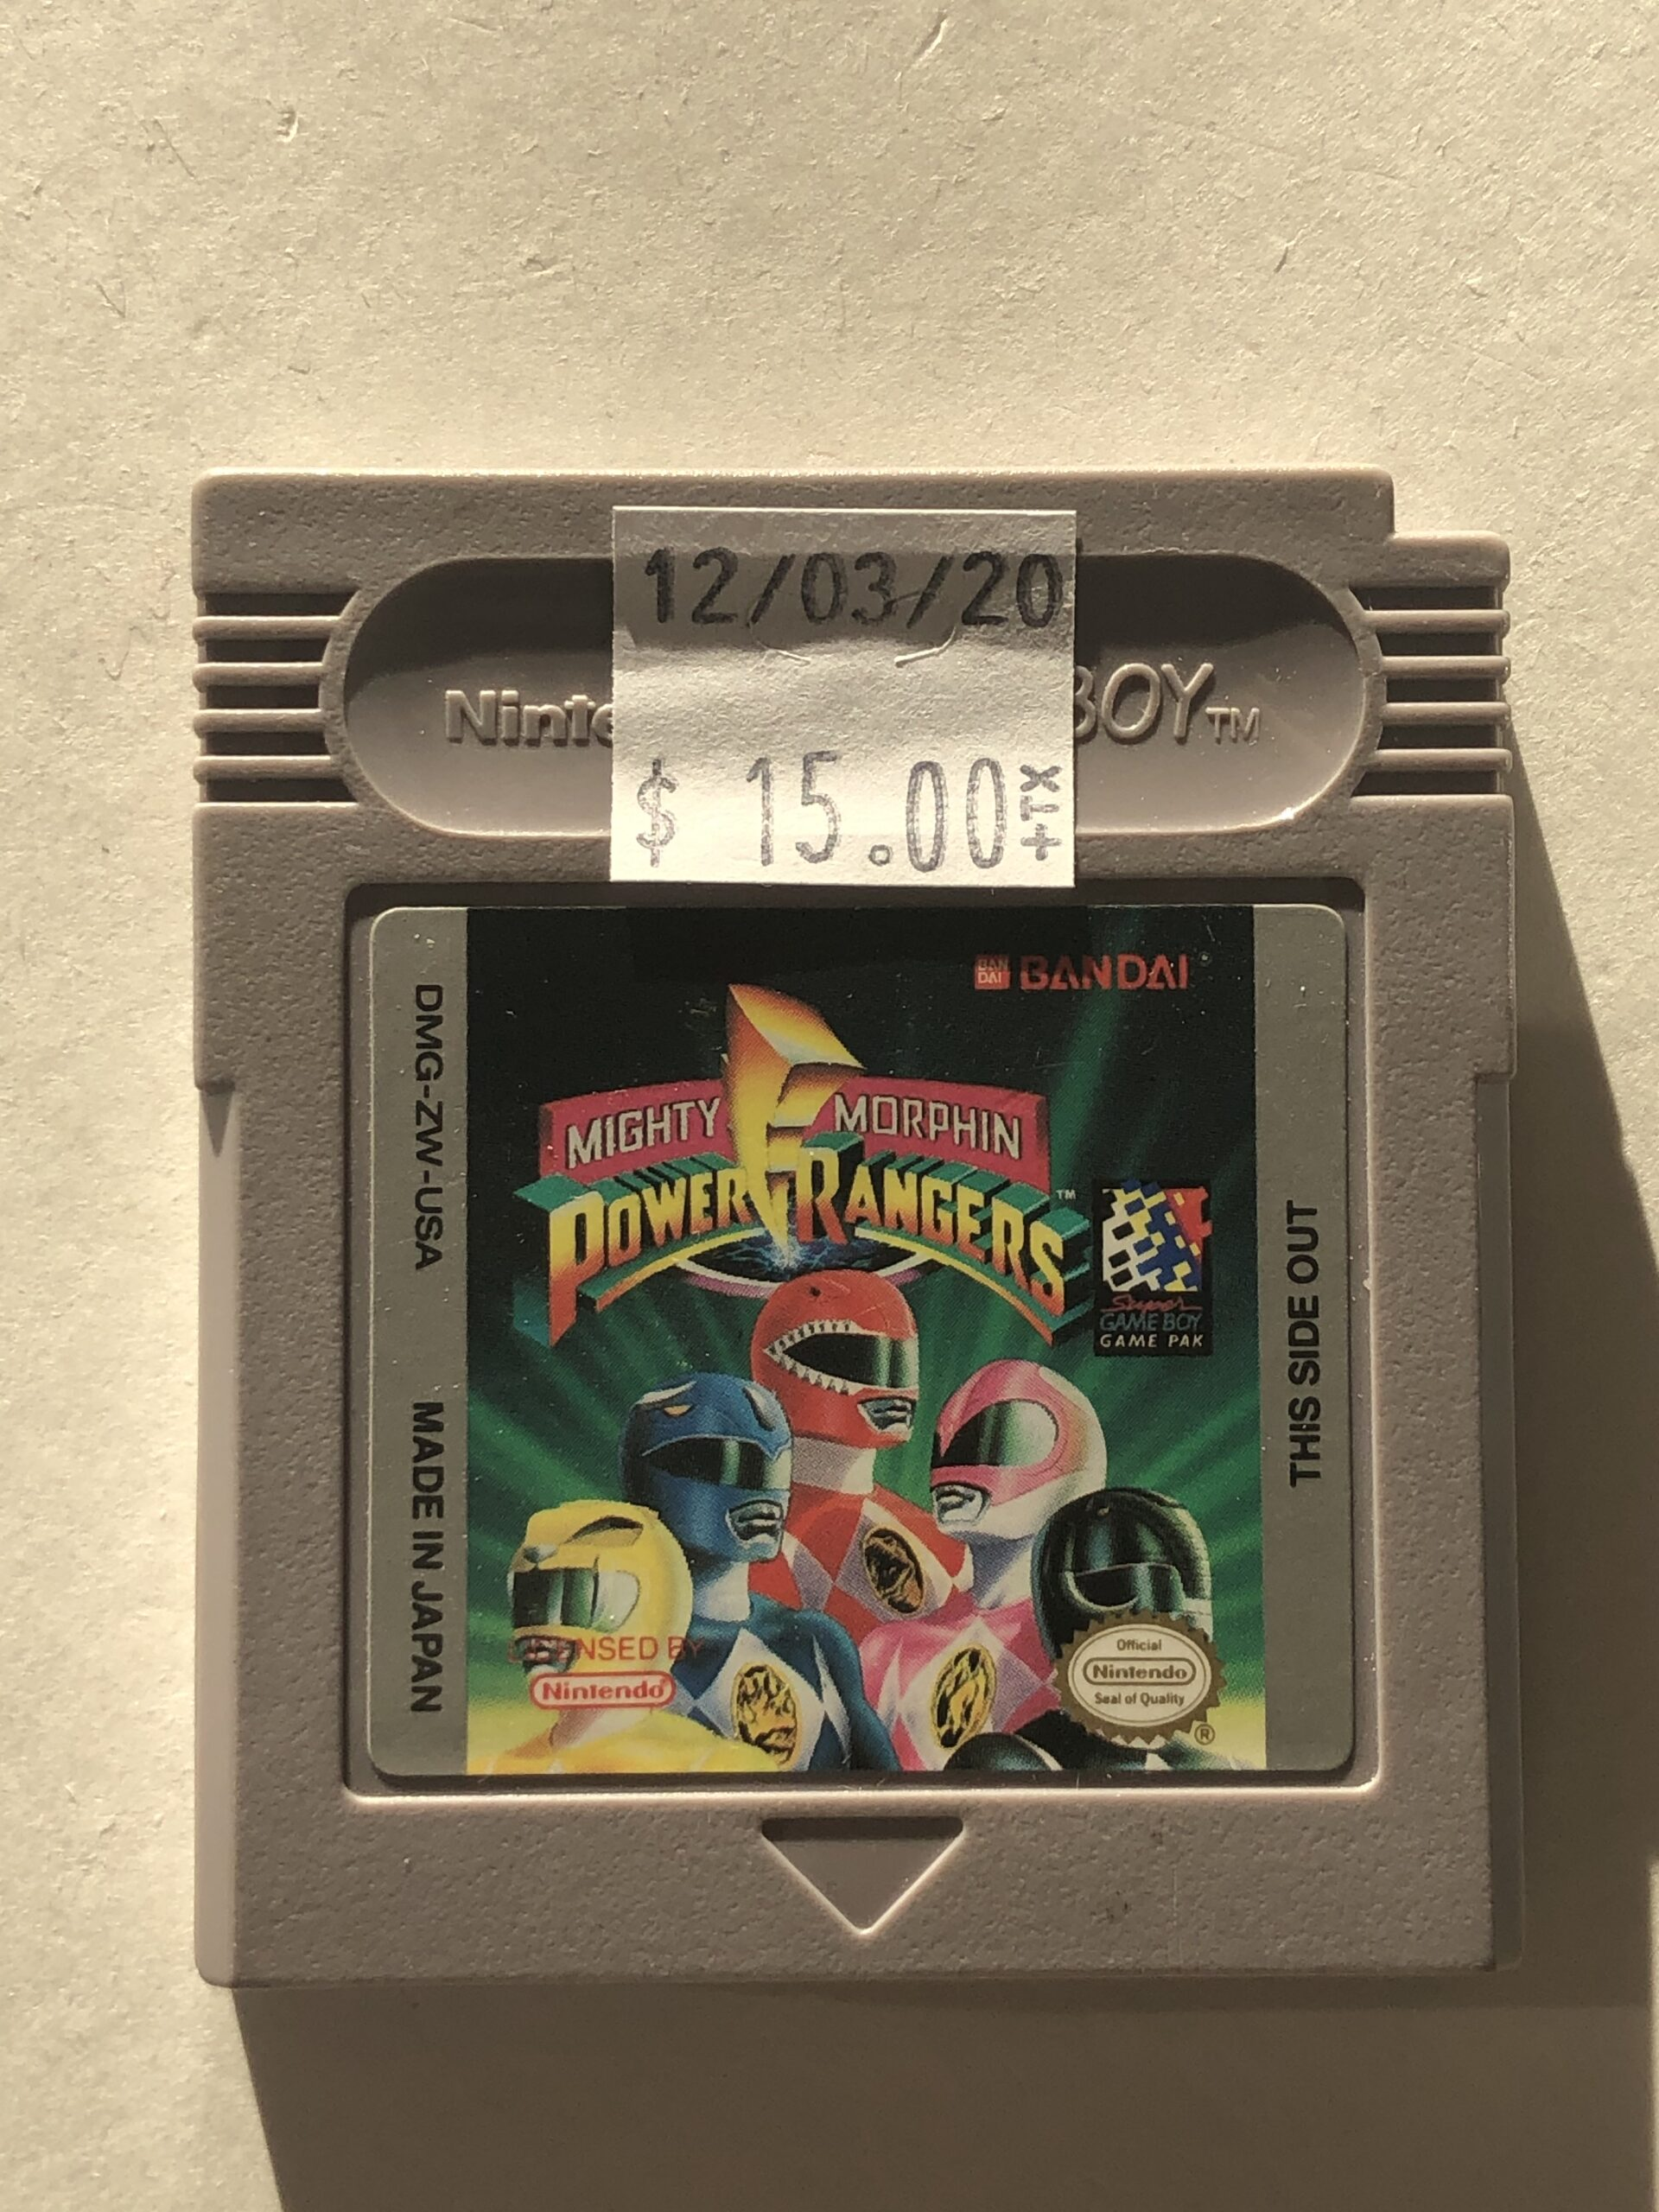 Mighty Morphin Power Rangers Cartridge Gameboy